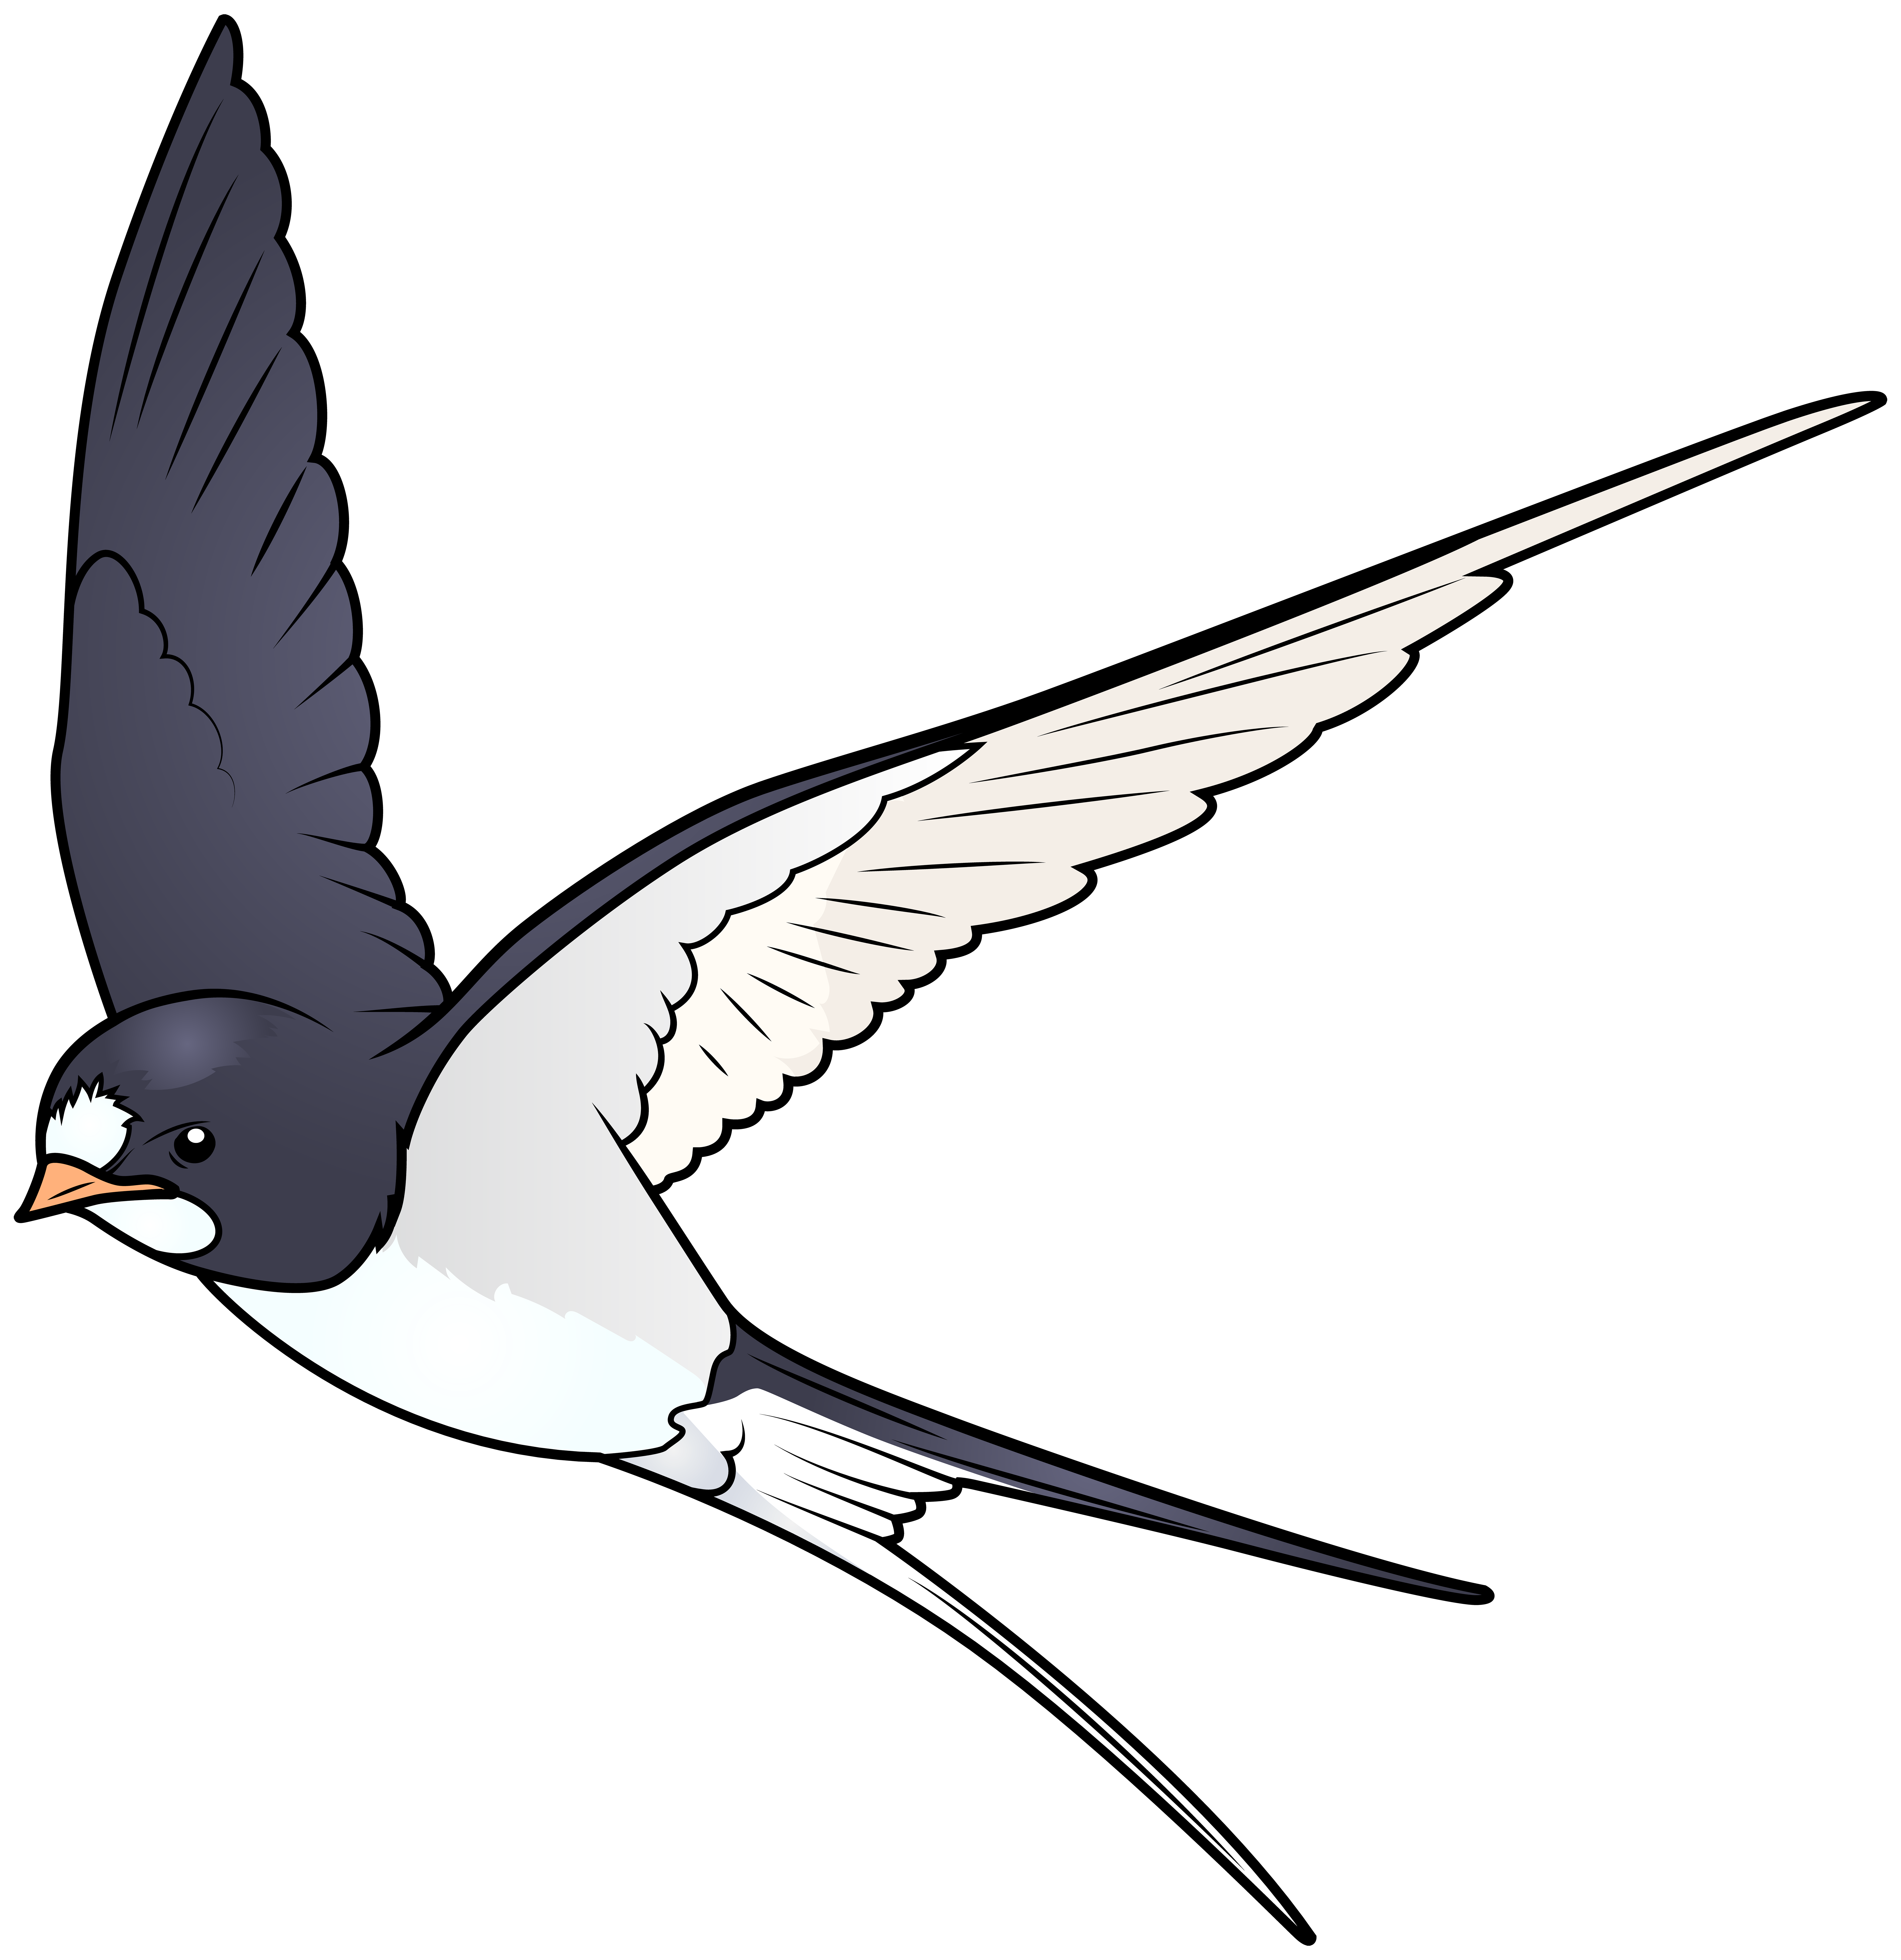 Cartoon bird png. Transparent image gallery yopriceville